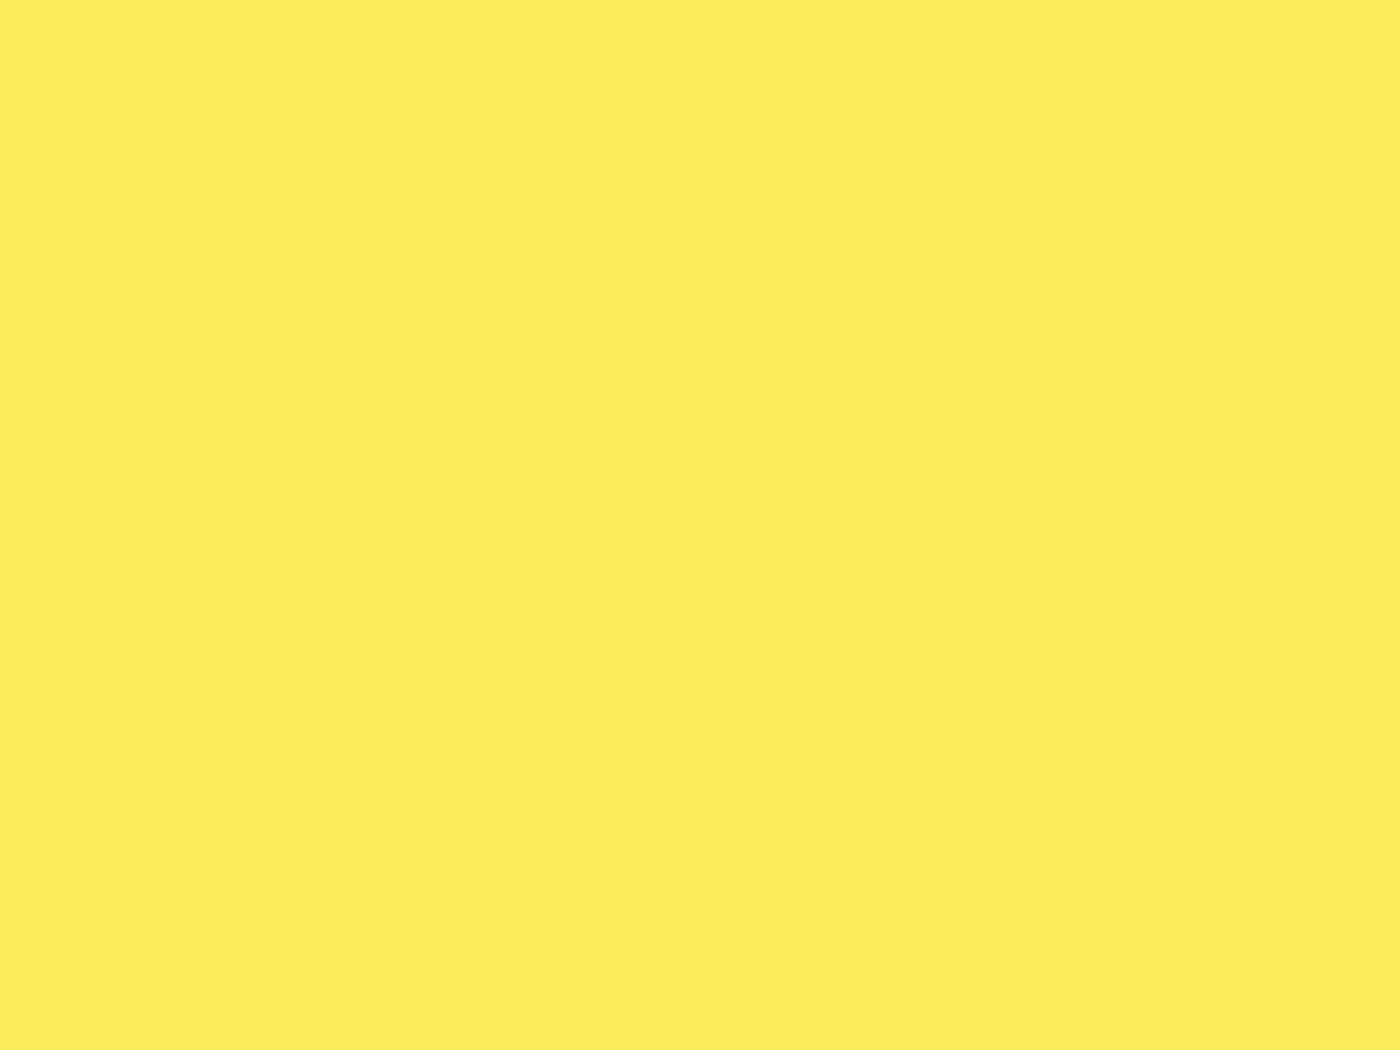 1400x1050 Maize Solid Color Background